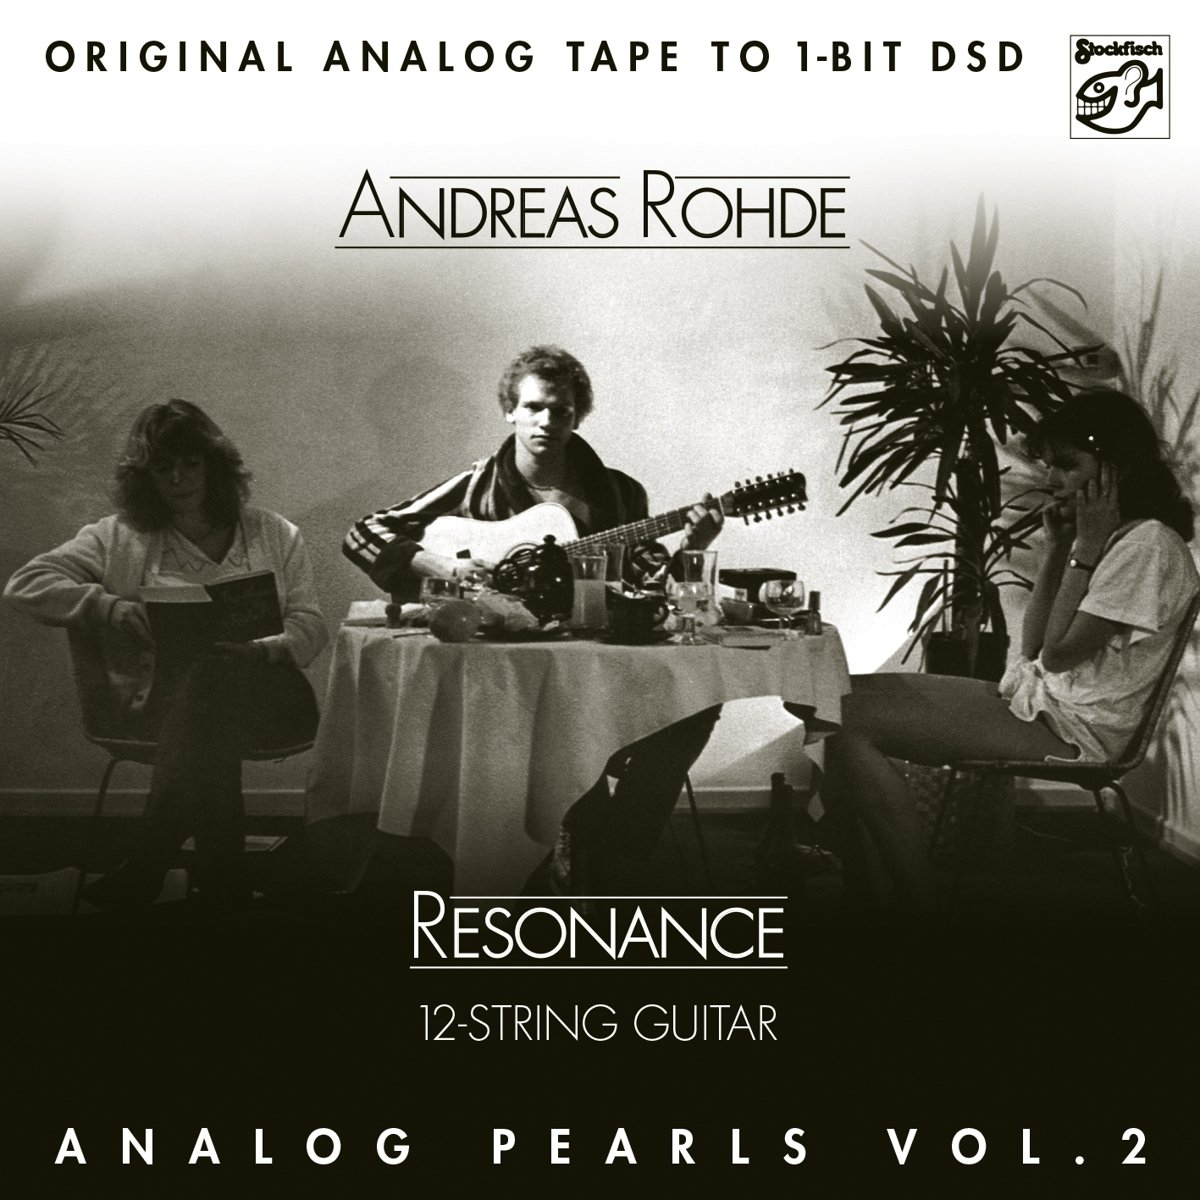 Limited time cheap sale ANALOG PEARLS VOL. 2 RESONANCE Excellent -